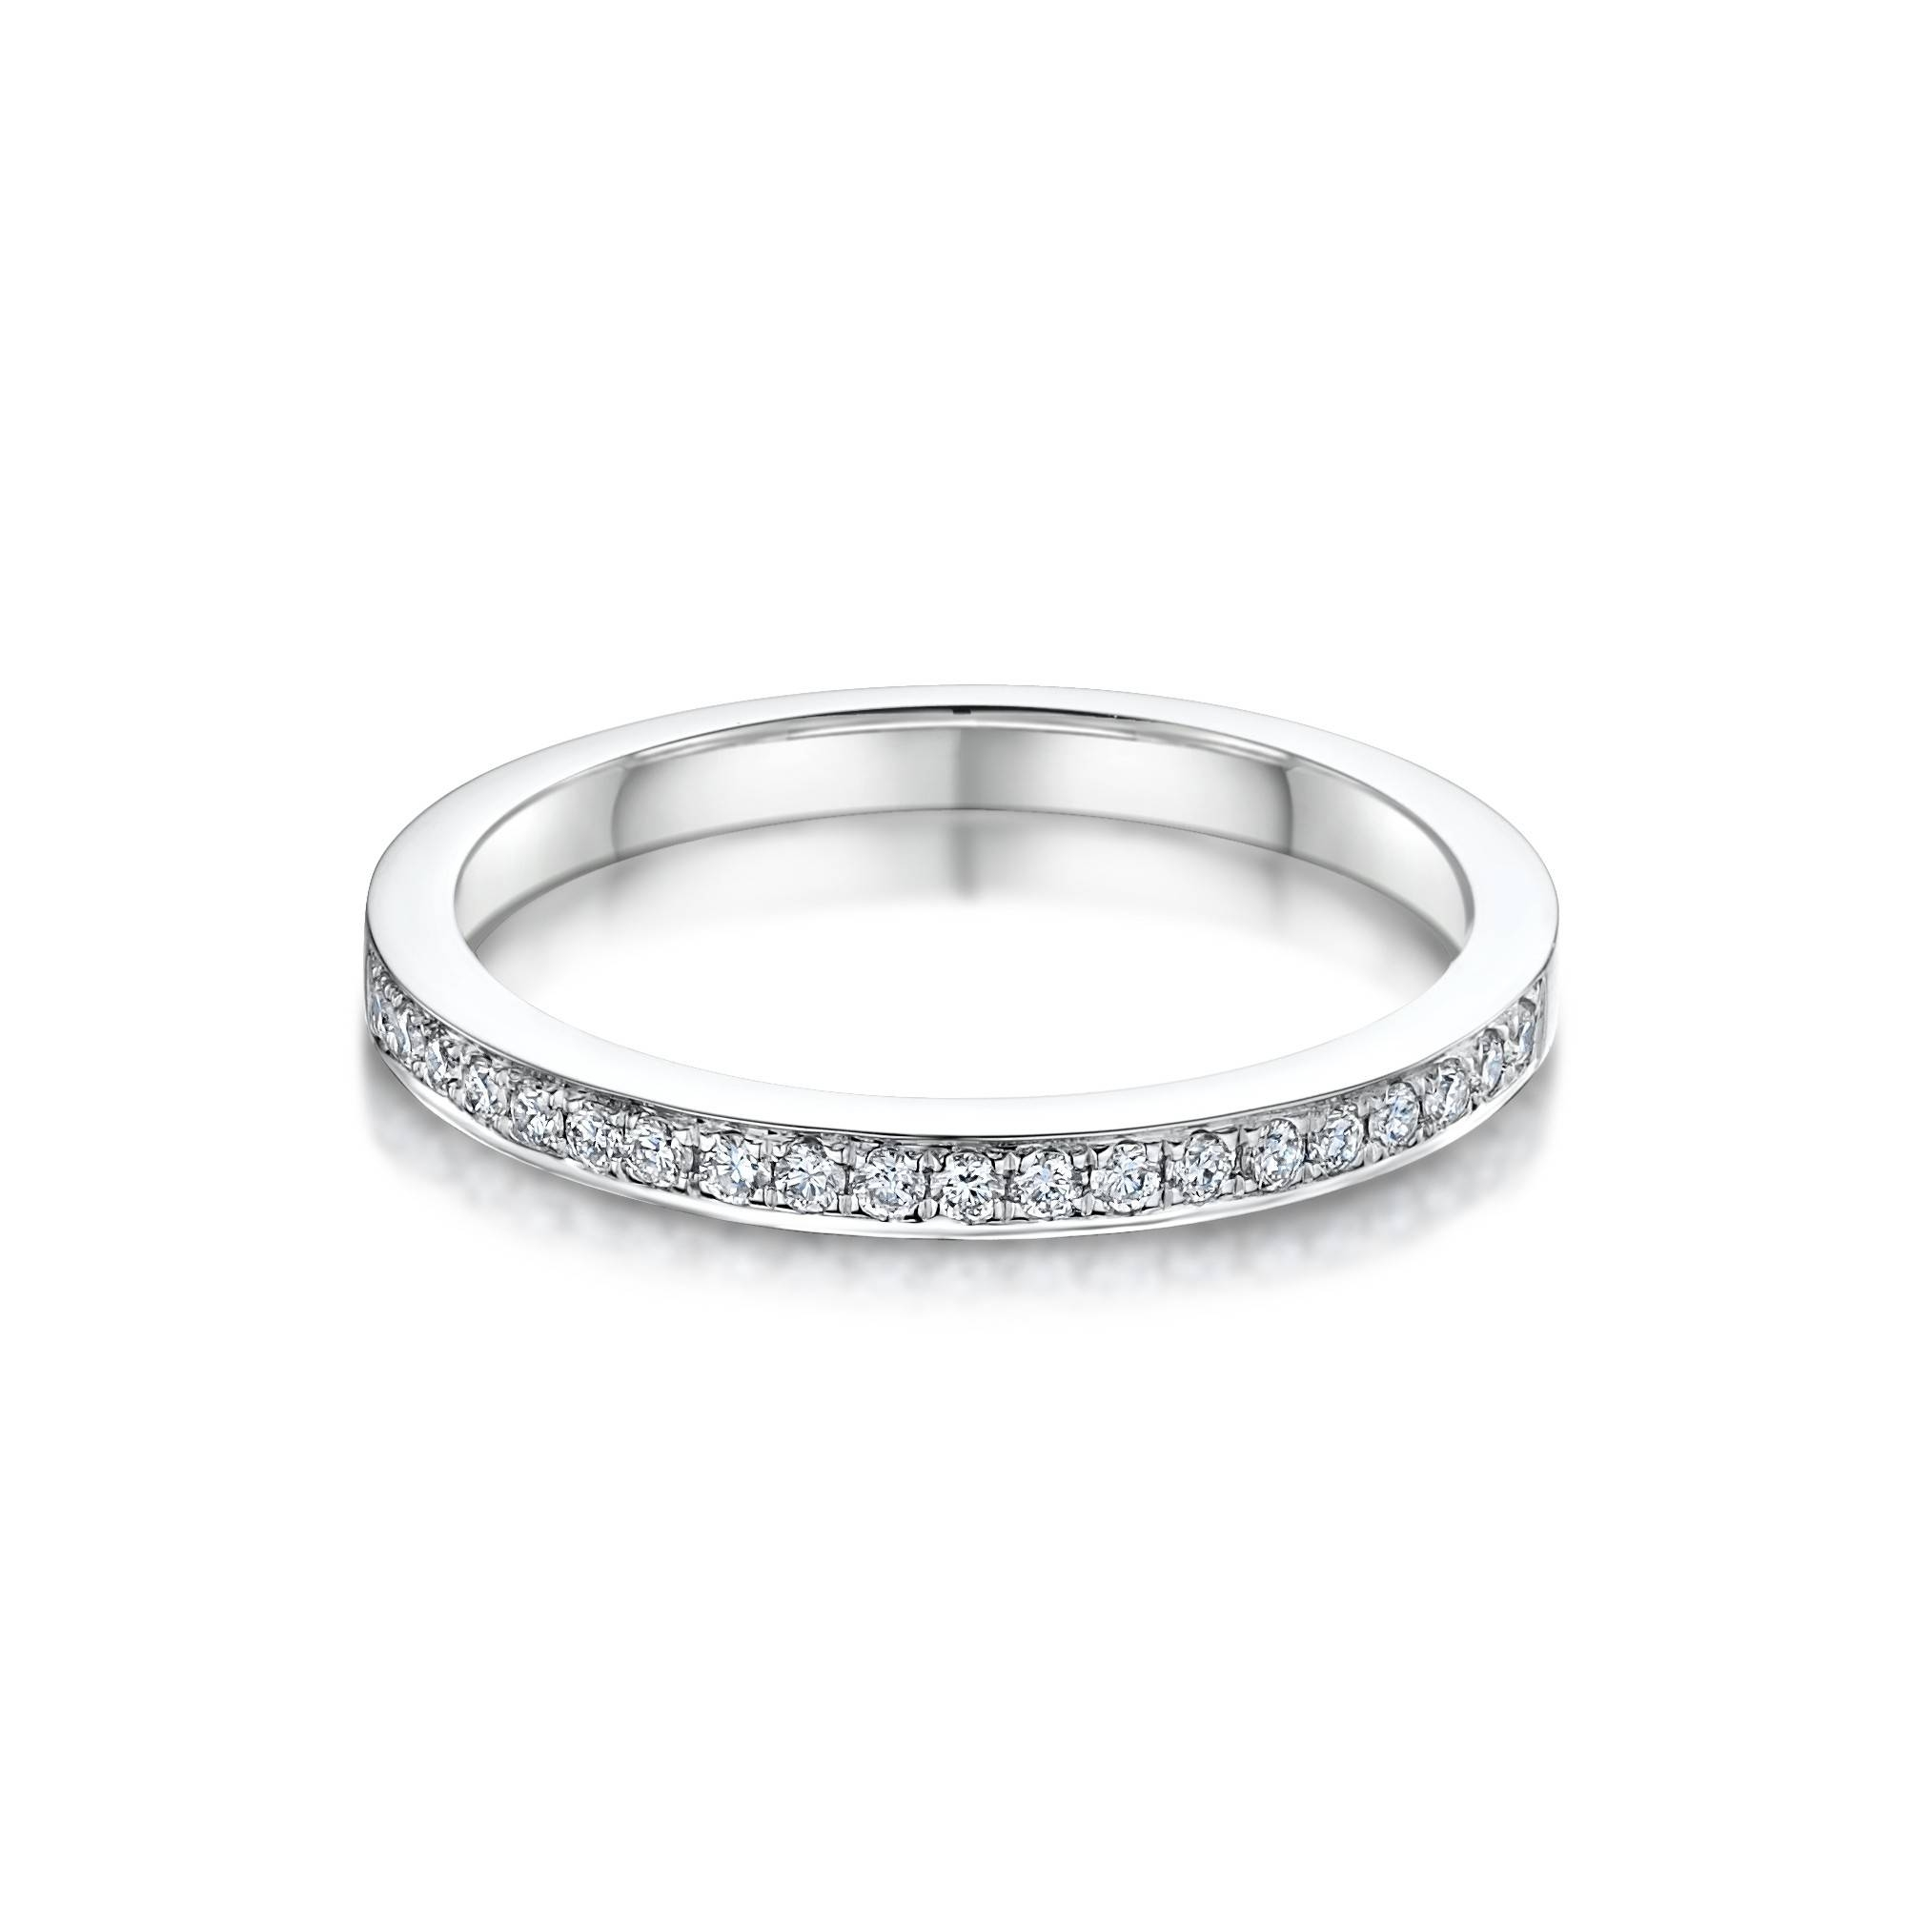 Sienna Diamond Set Platinum Wedding Band | Laings The Jeweller With Regard To Best And Newest Platinum Wedding Band With Diamonds (Gallery 15 of 15)